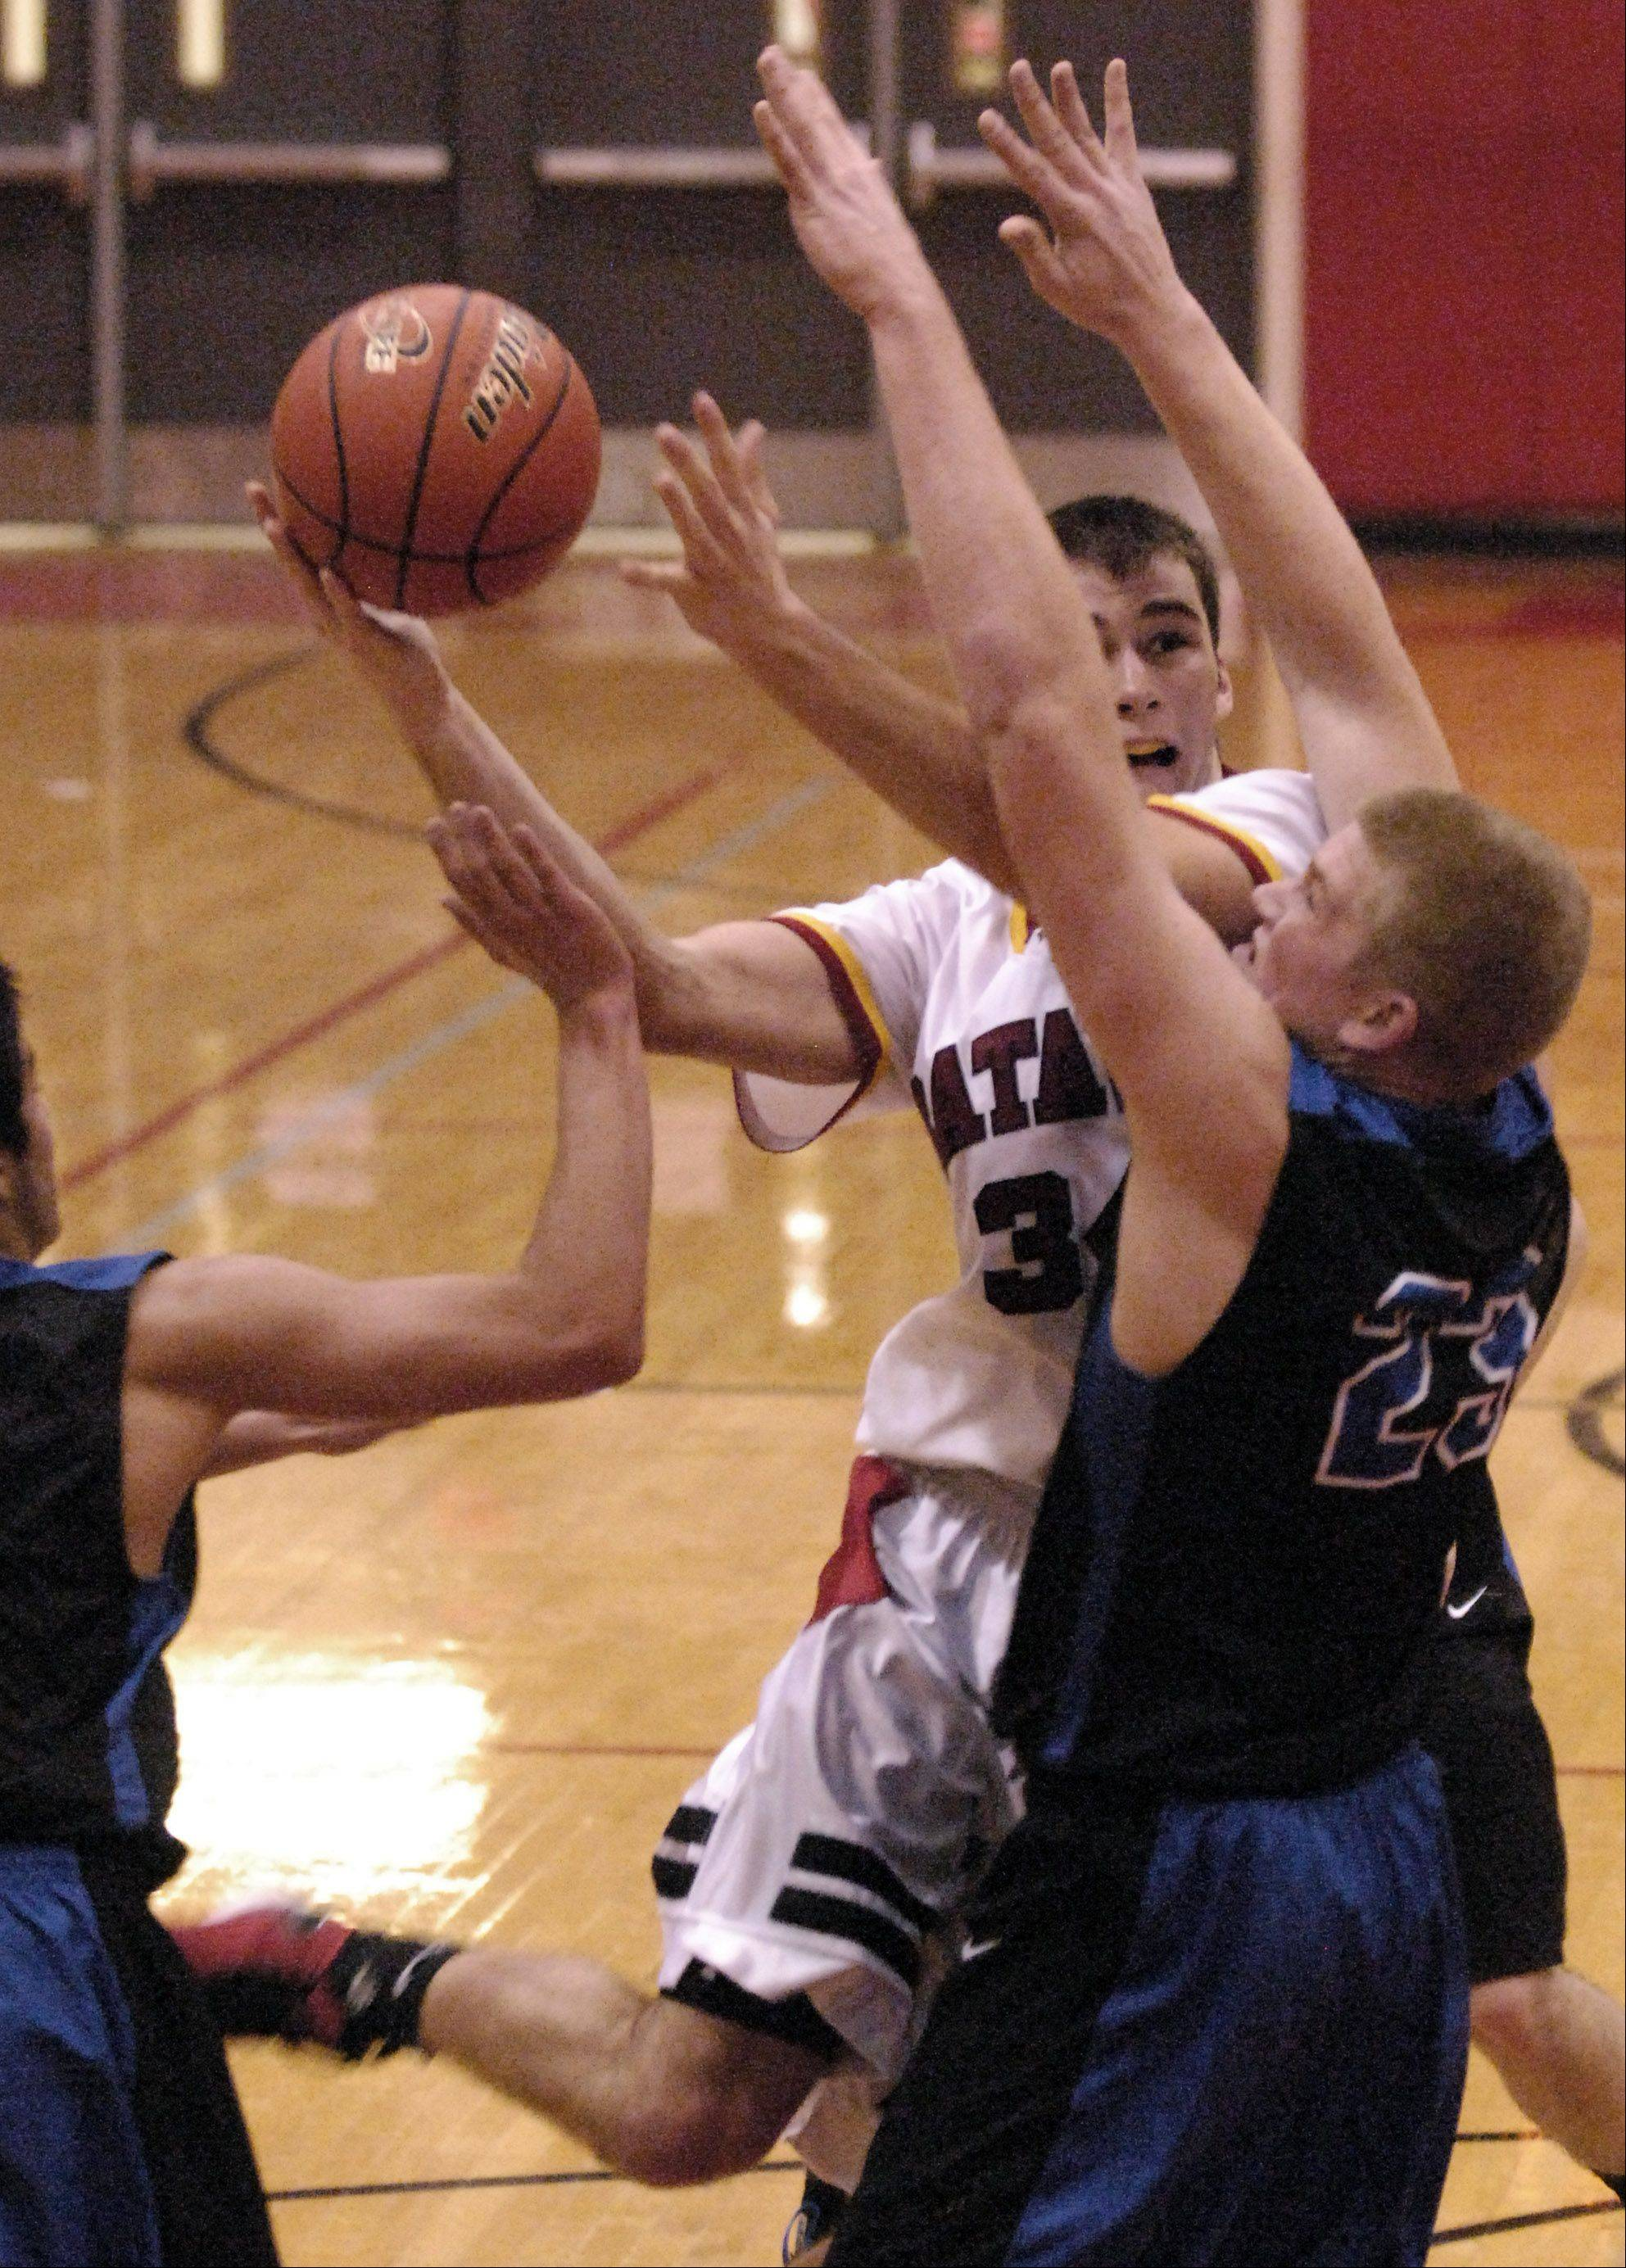 Batavia's Zach Strittmatter drives against St. Charles North's Justin Stanko.